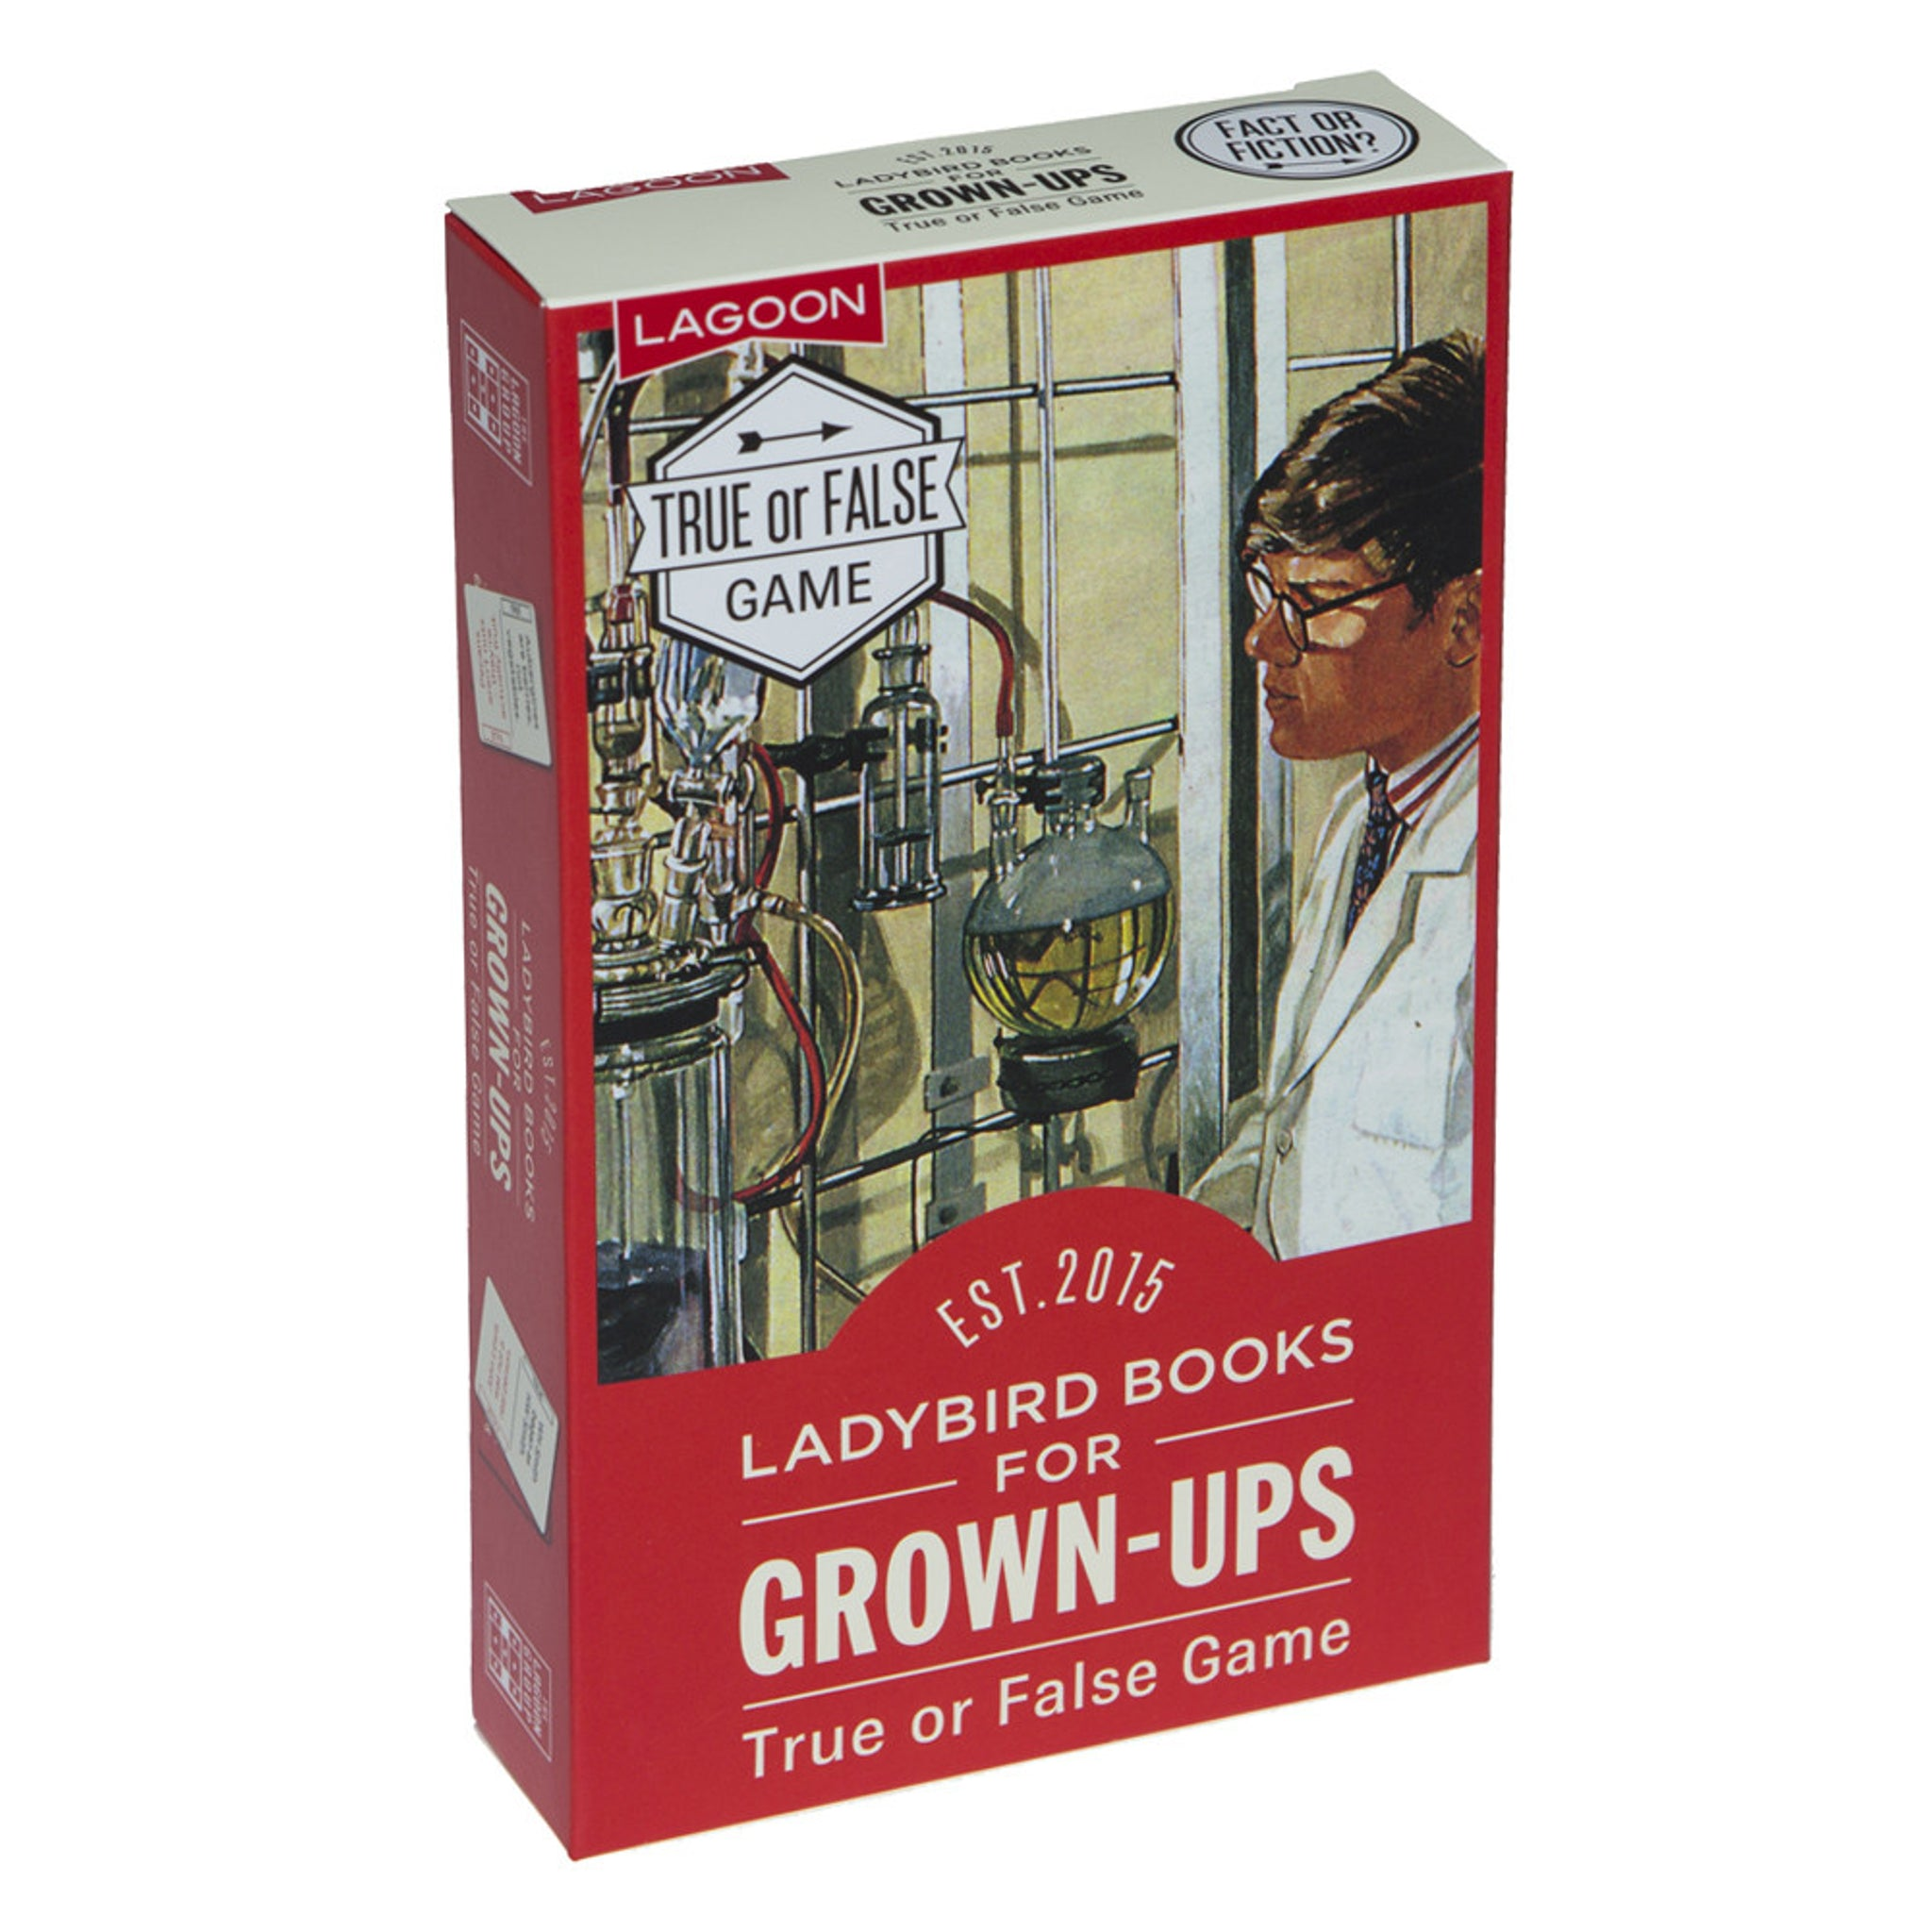 Ladybird Books for Grown-Ups – True or False Game